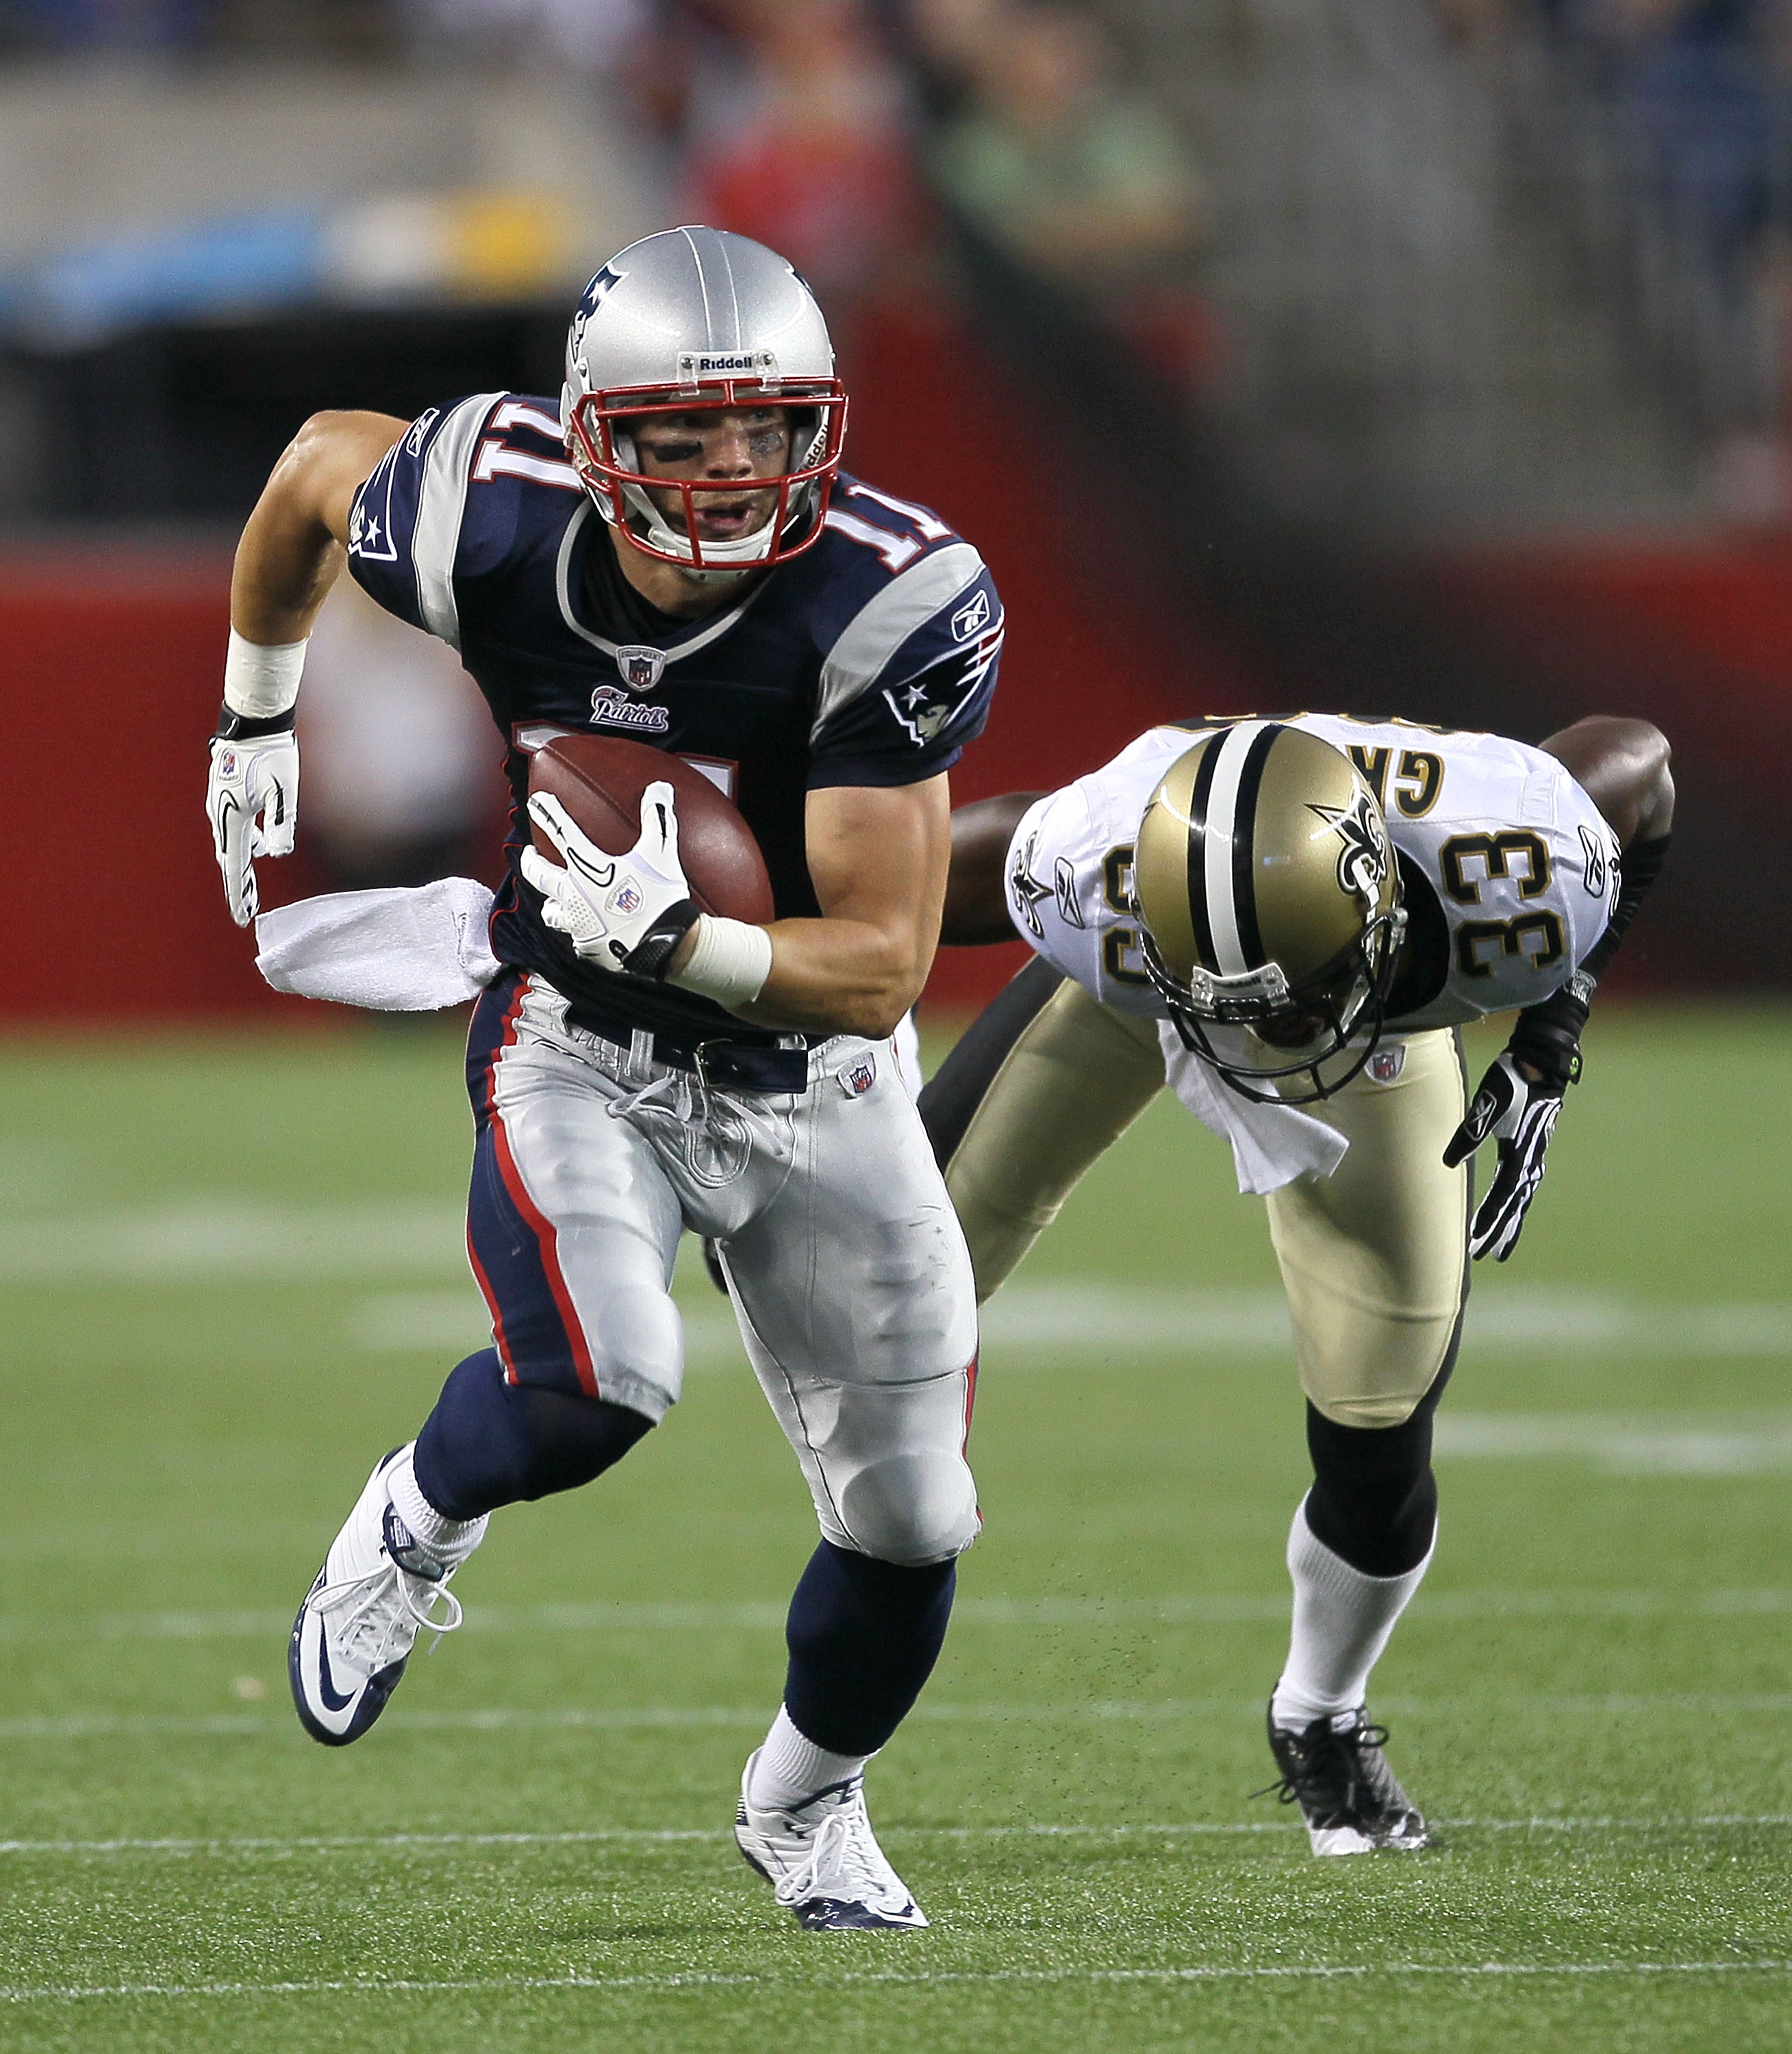 Julian Edelman has quick feet and is a great compliment to his teammate, Wes Welker